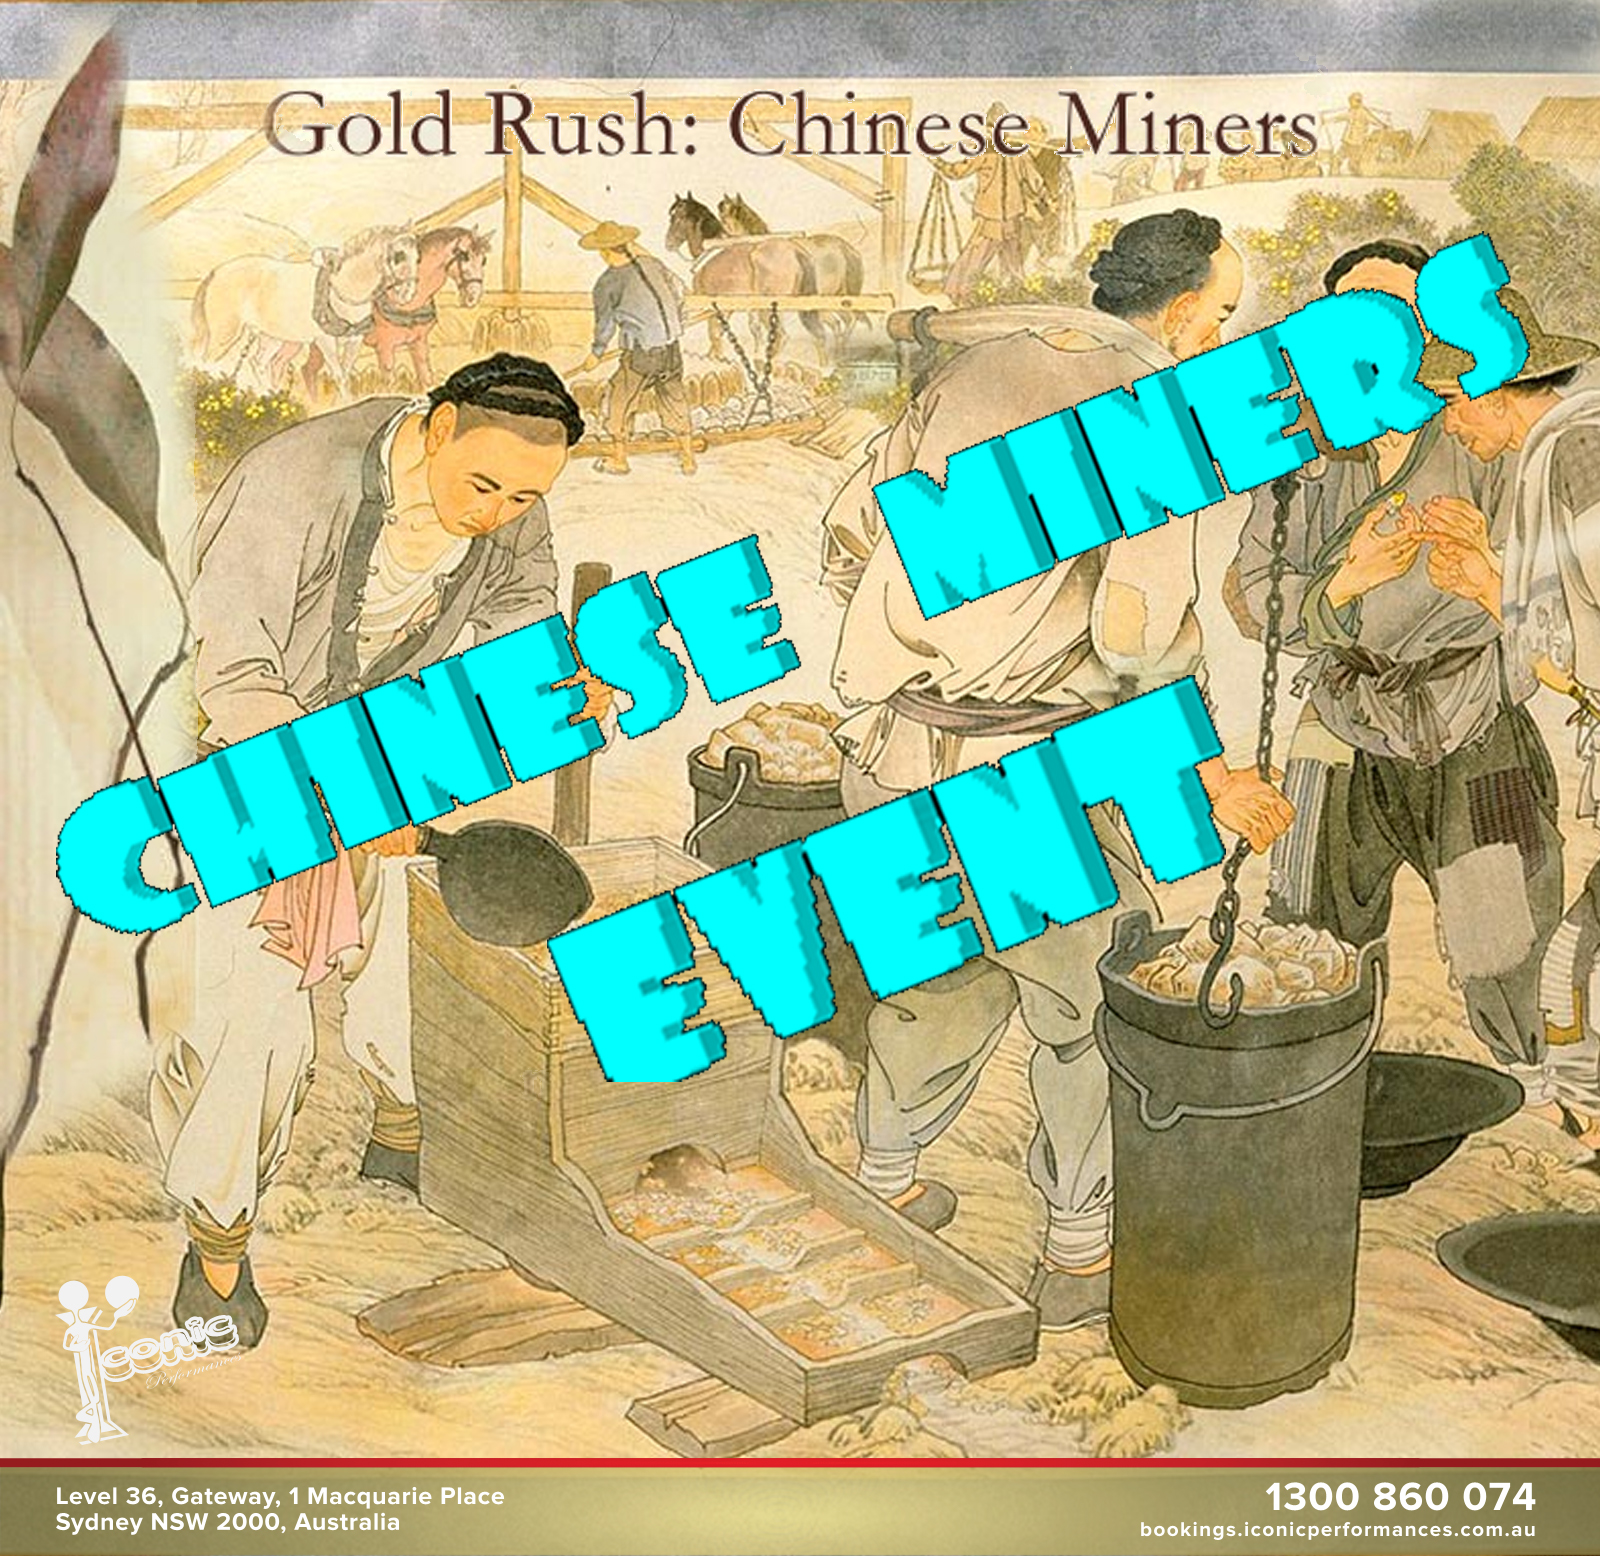 Hilarious Chinese Miners Event